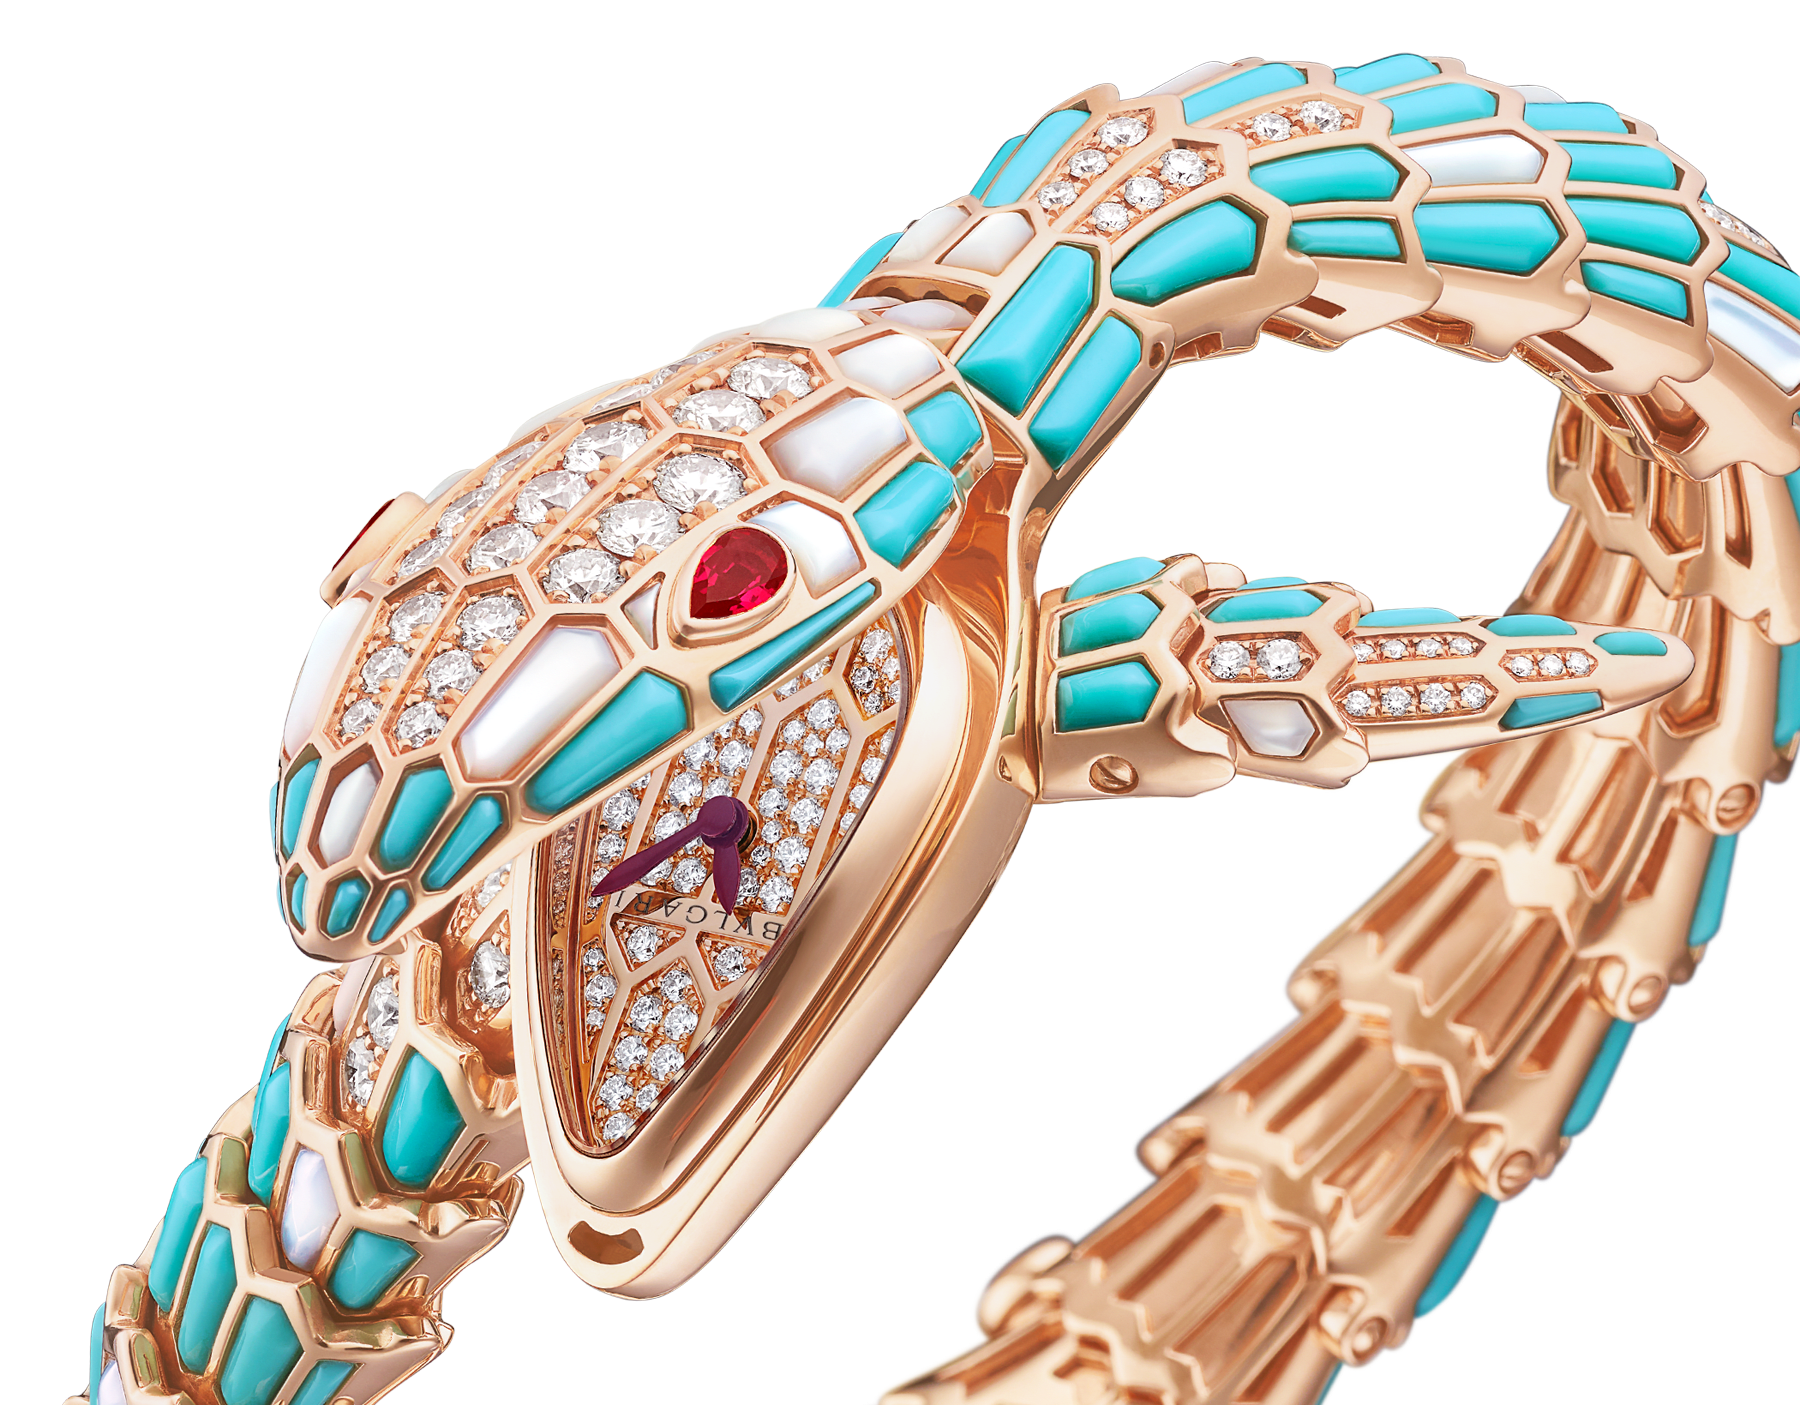 Serpenti Secret Watch with 18 kt rose gold head and single spiral bracelet, both set with brilliant cut diamonds, turquoise and mother-of-pearl elements, ruby eyes, 18 kt rose gold case, 18 kt rose gold dial set with brilliant cut diamonds and mother-of-pearl. 102533 image 2